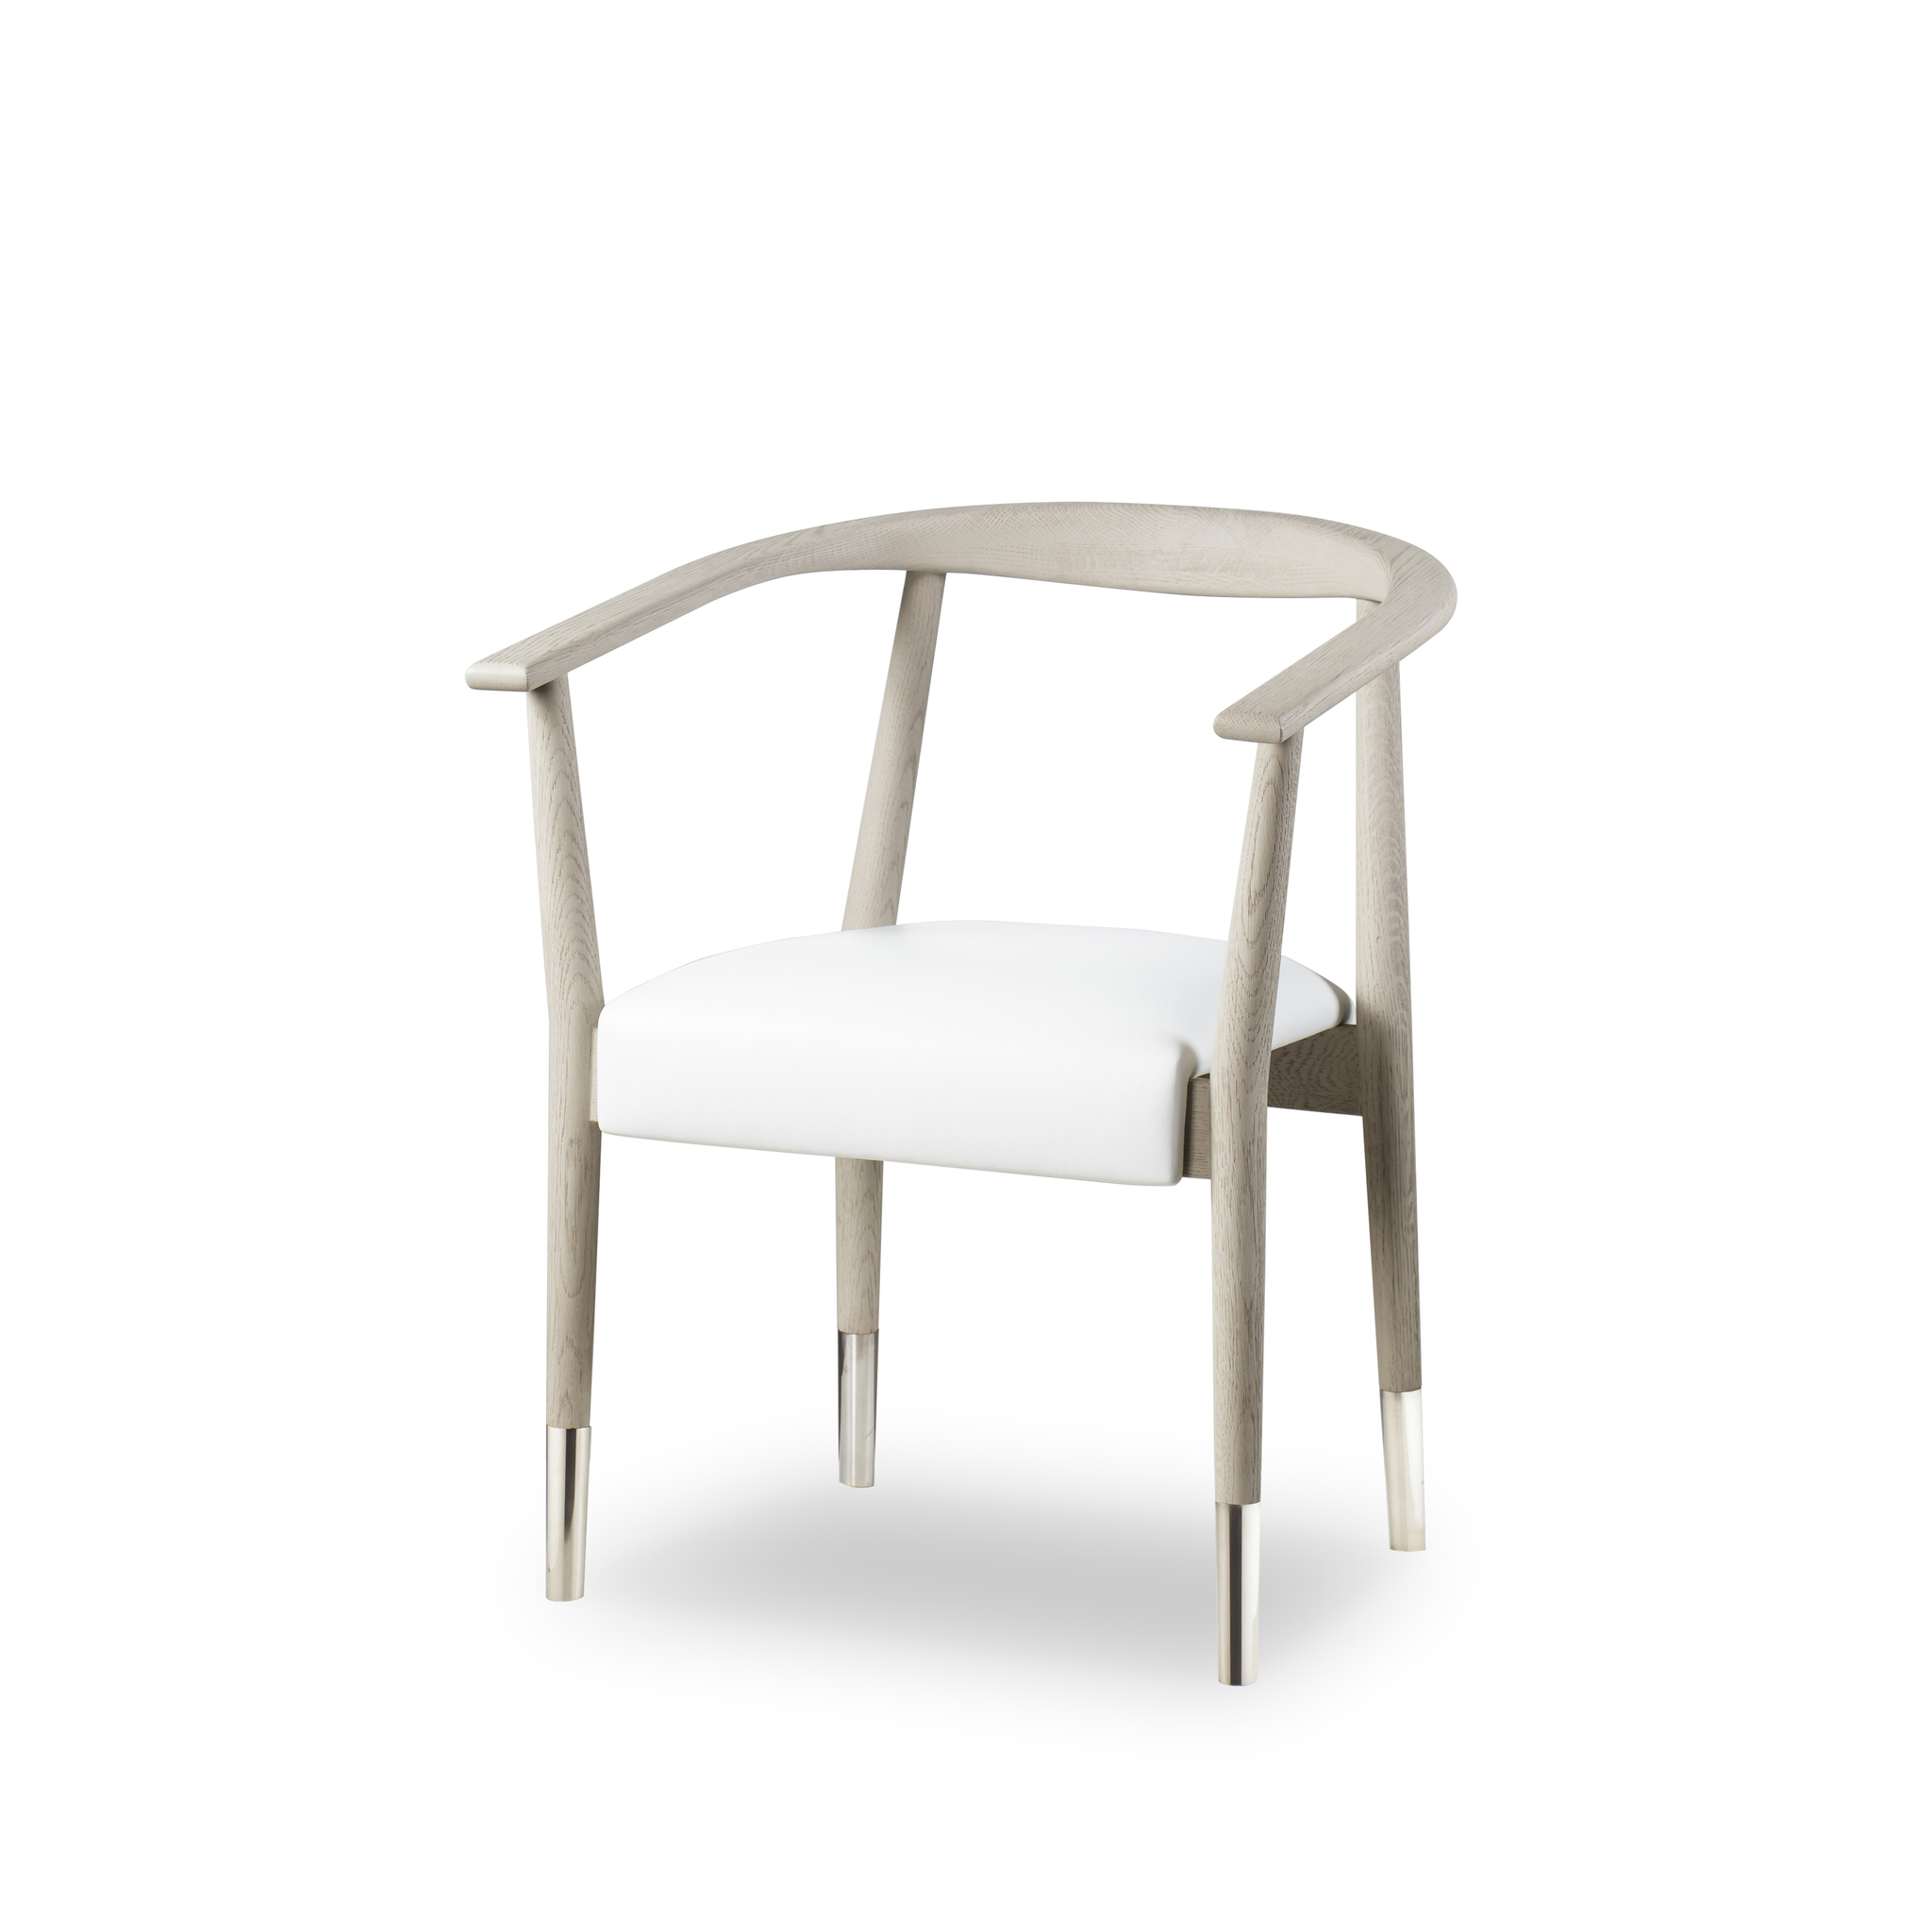 oak and white dining chairs fisher price table soho chair grey fallon leather resource decor